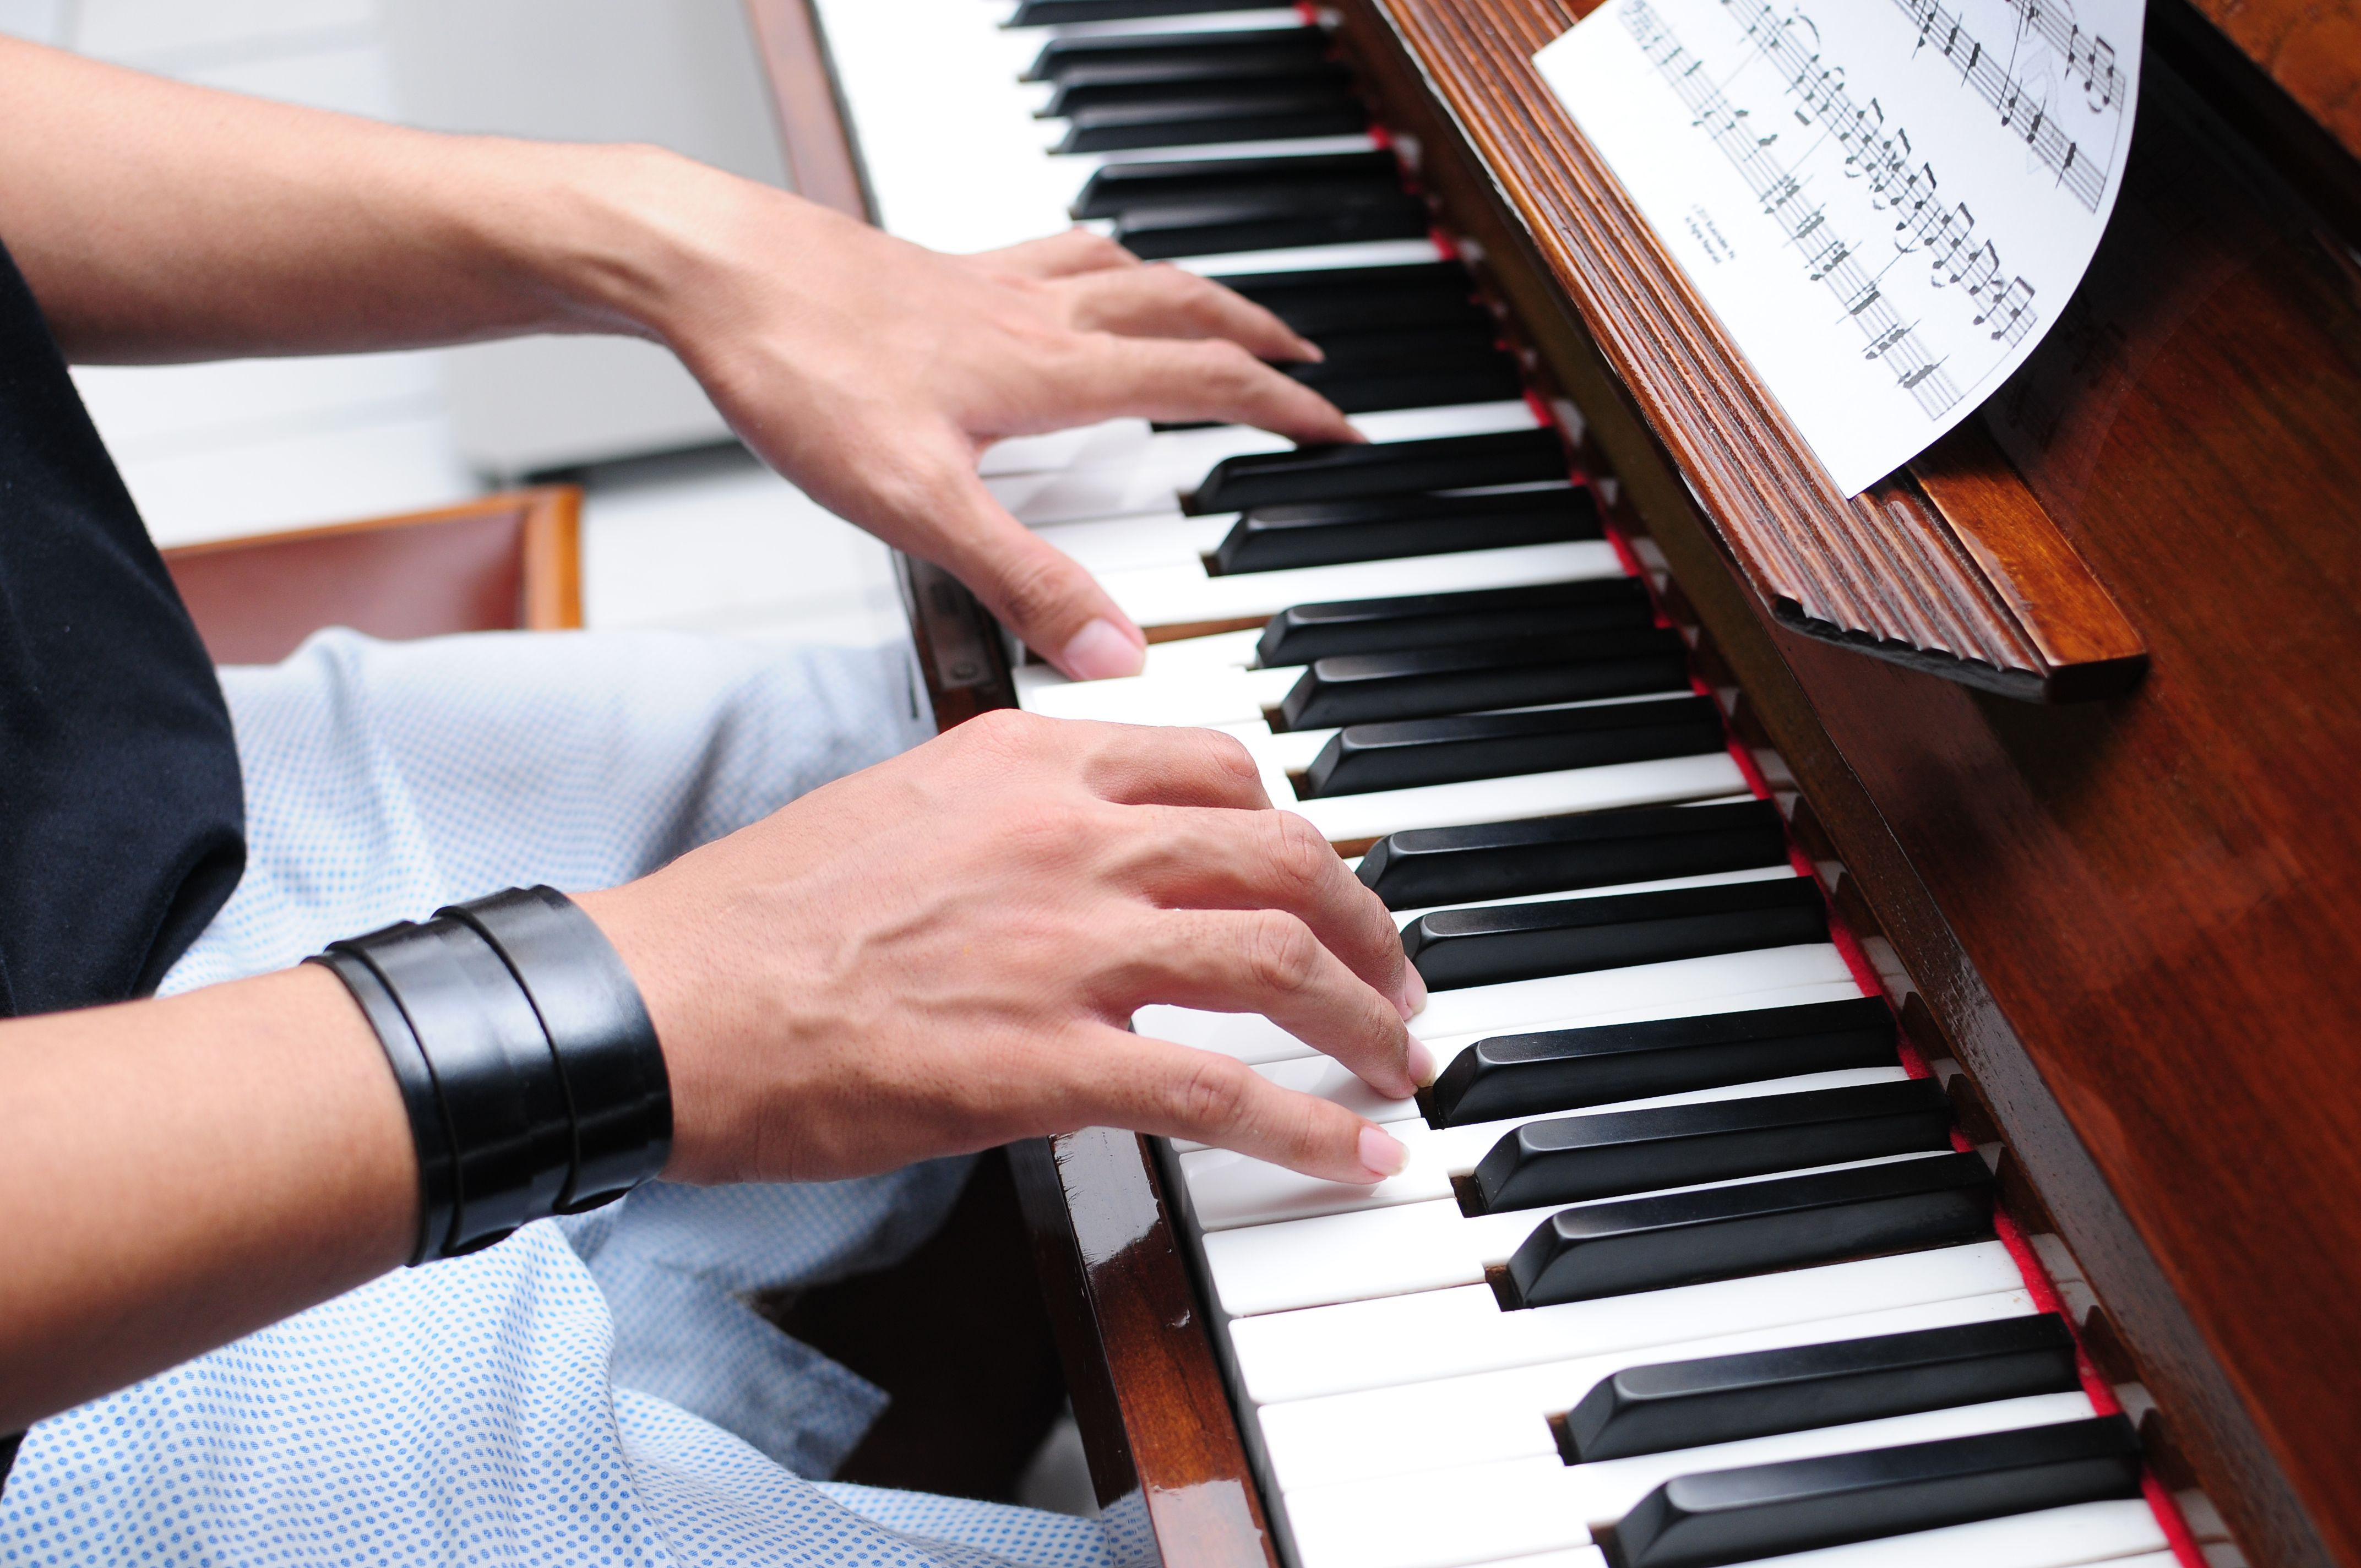 How to learn piano Piano Lesson Source has tons of information and online piano lessons so that you can learn how to play piano. http://pianolessonsource.com/